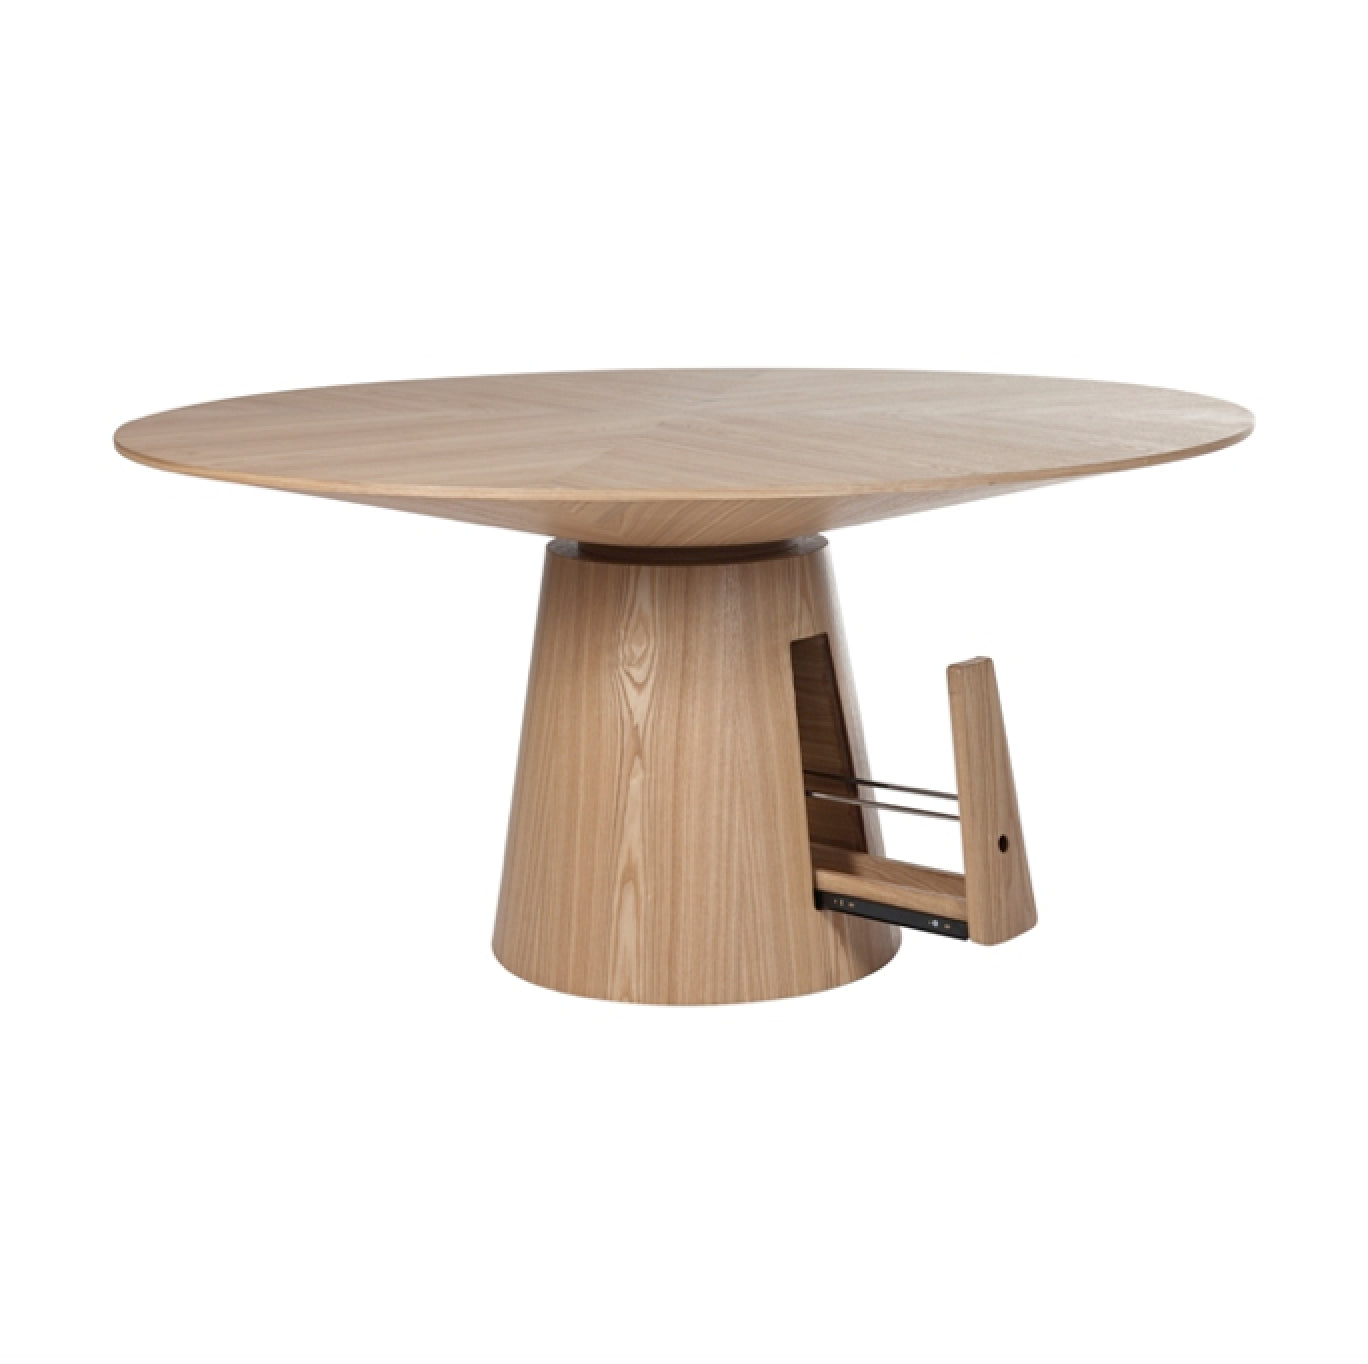 Round Dining Table. Classique Round Dining Table